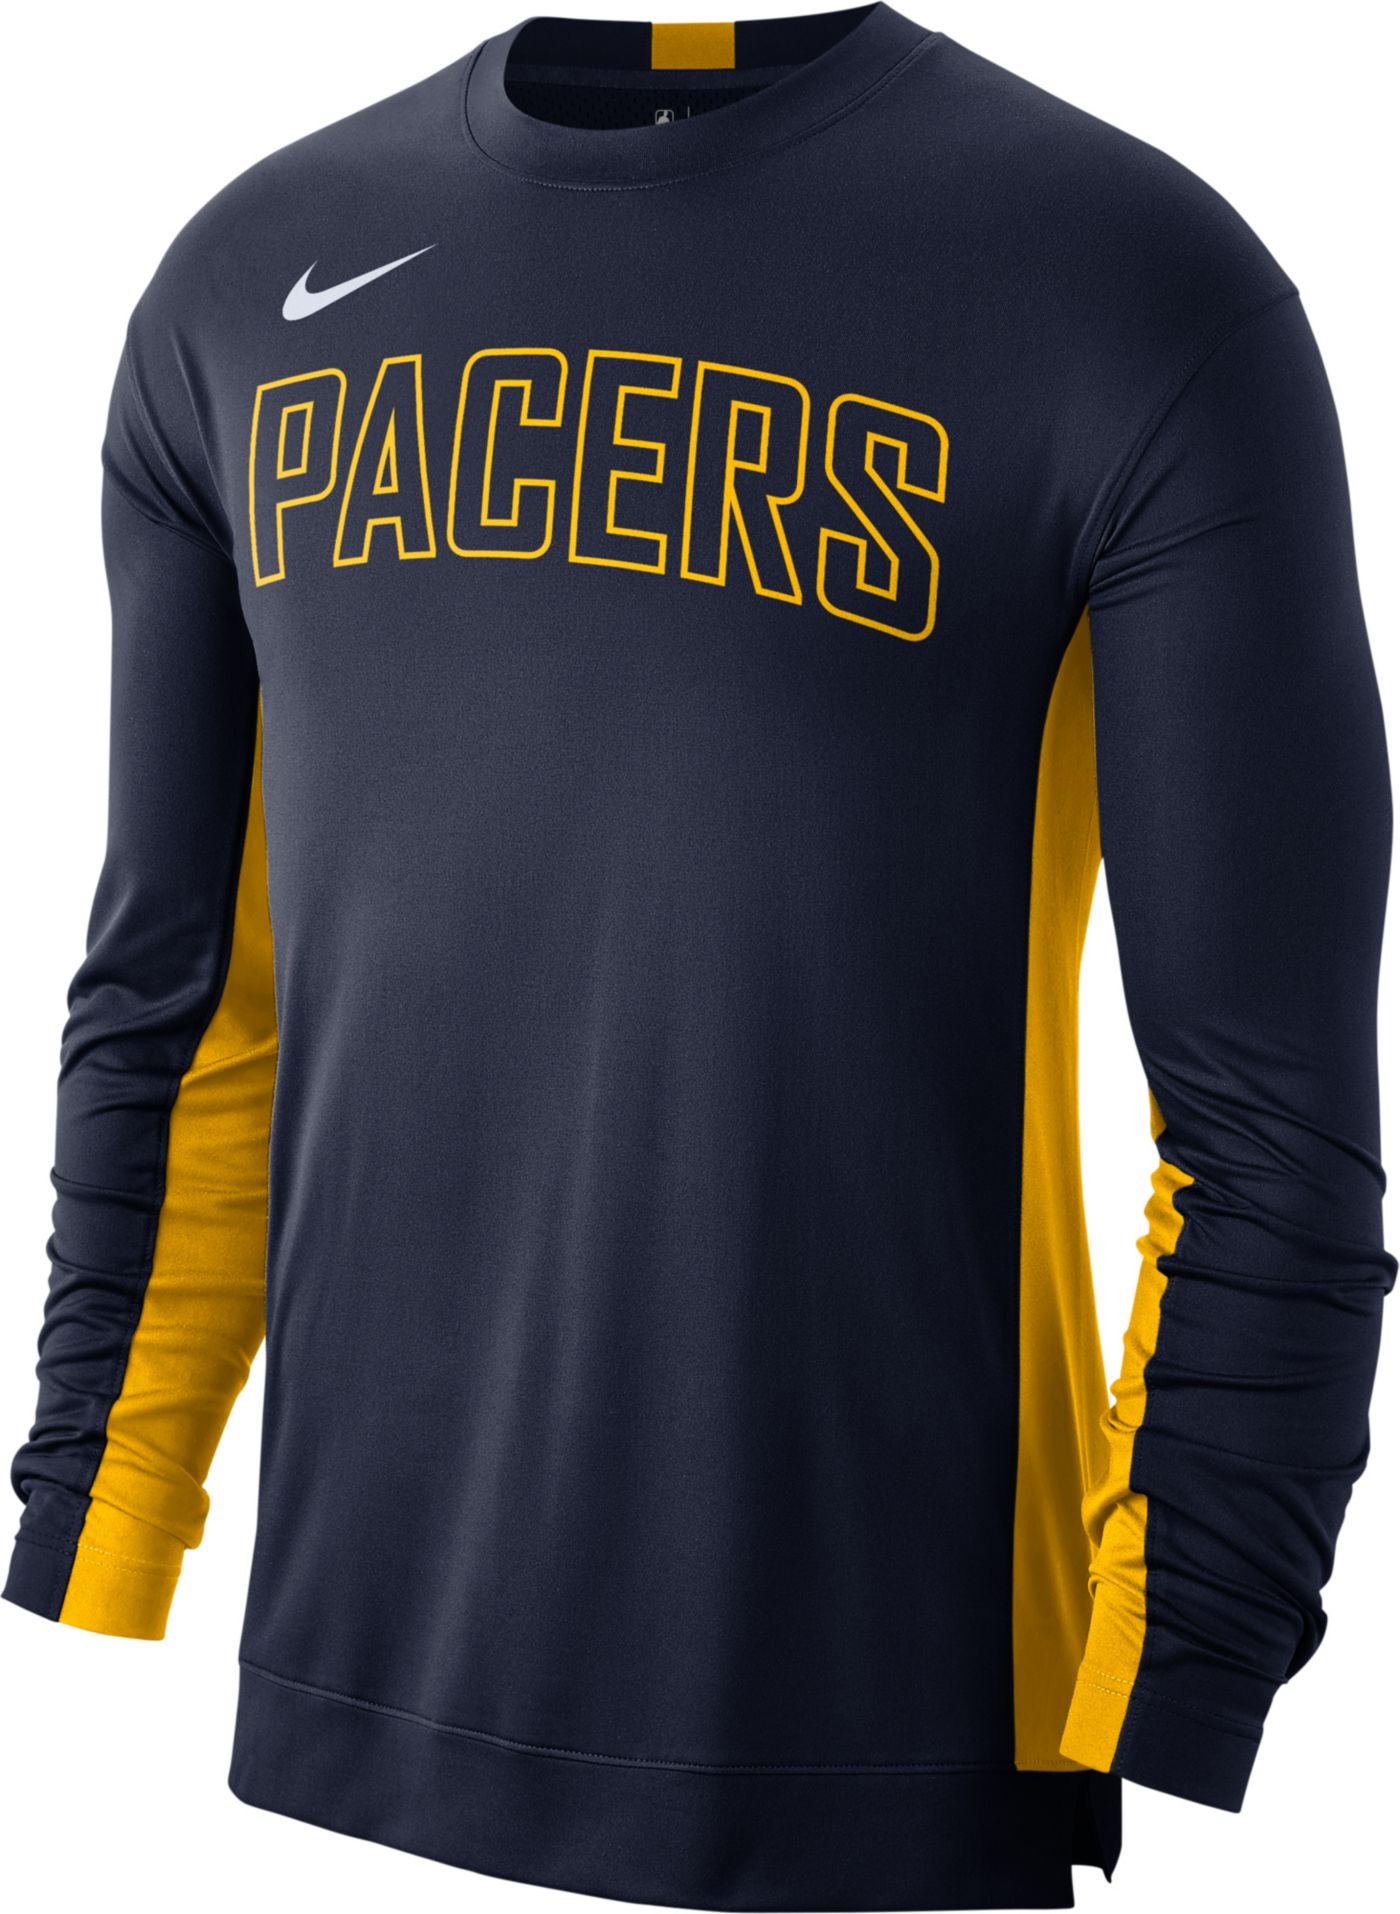 Nike Men's Indiana Pacers Dri-FIT Long Sleeve Shooting  Shirt